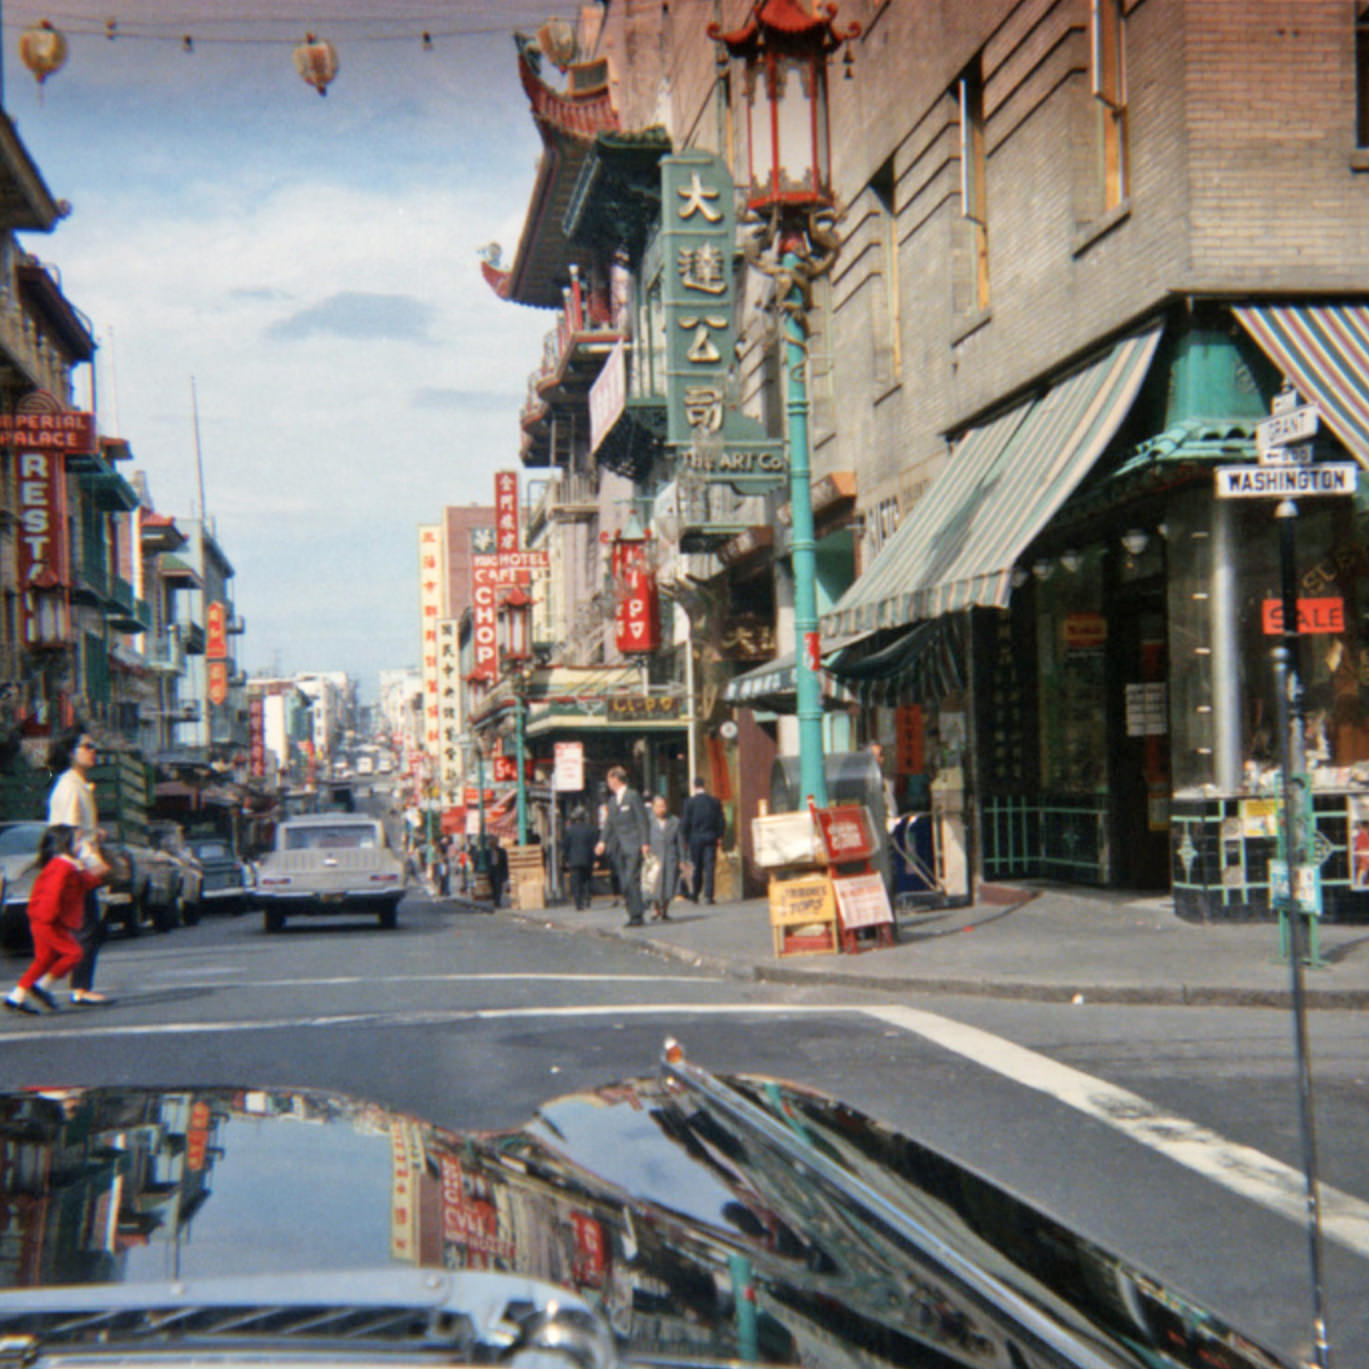 San Francisco circa 1965: Chinatown